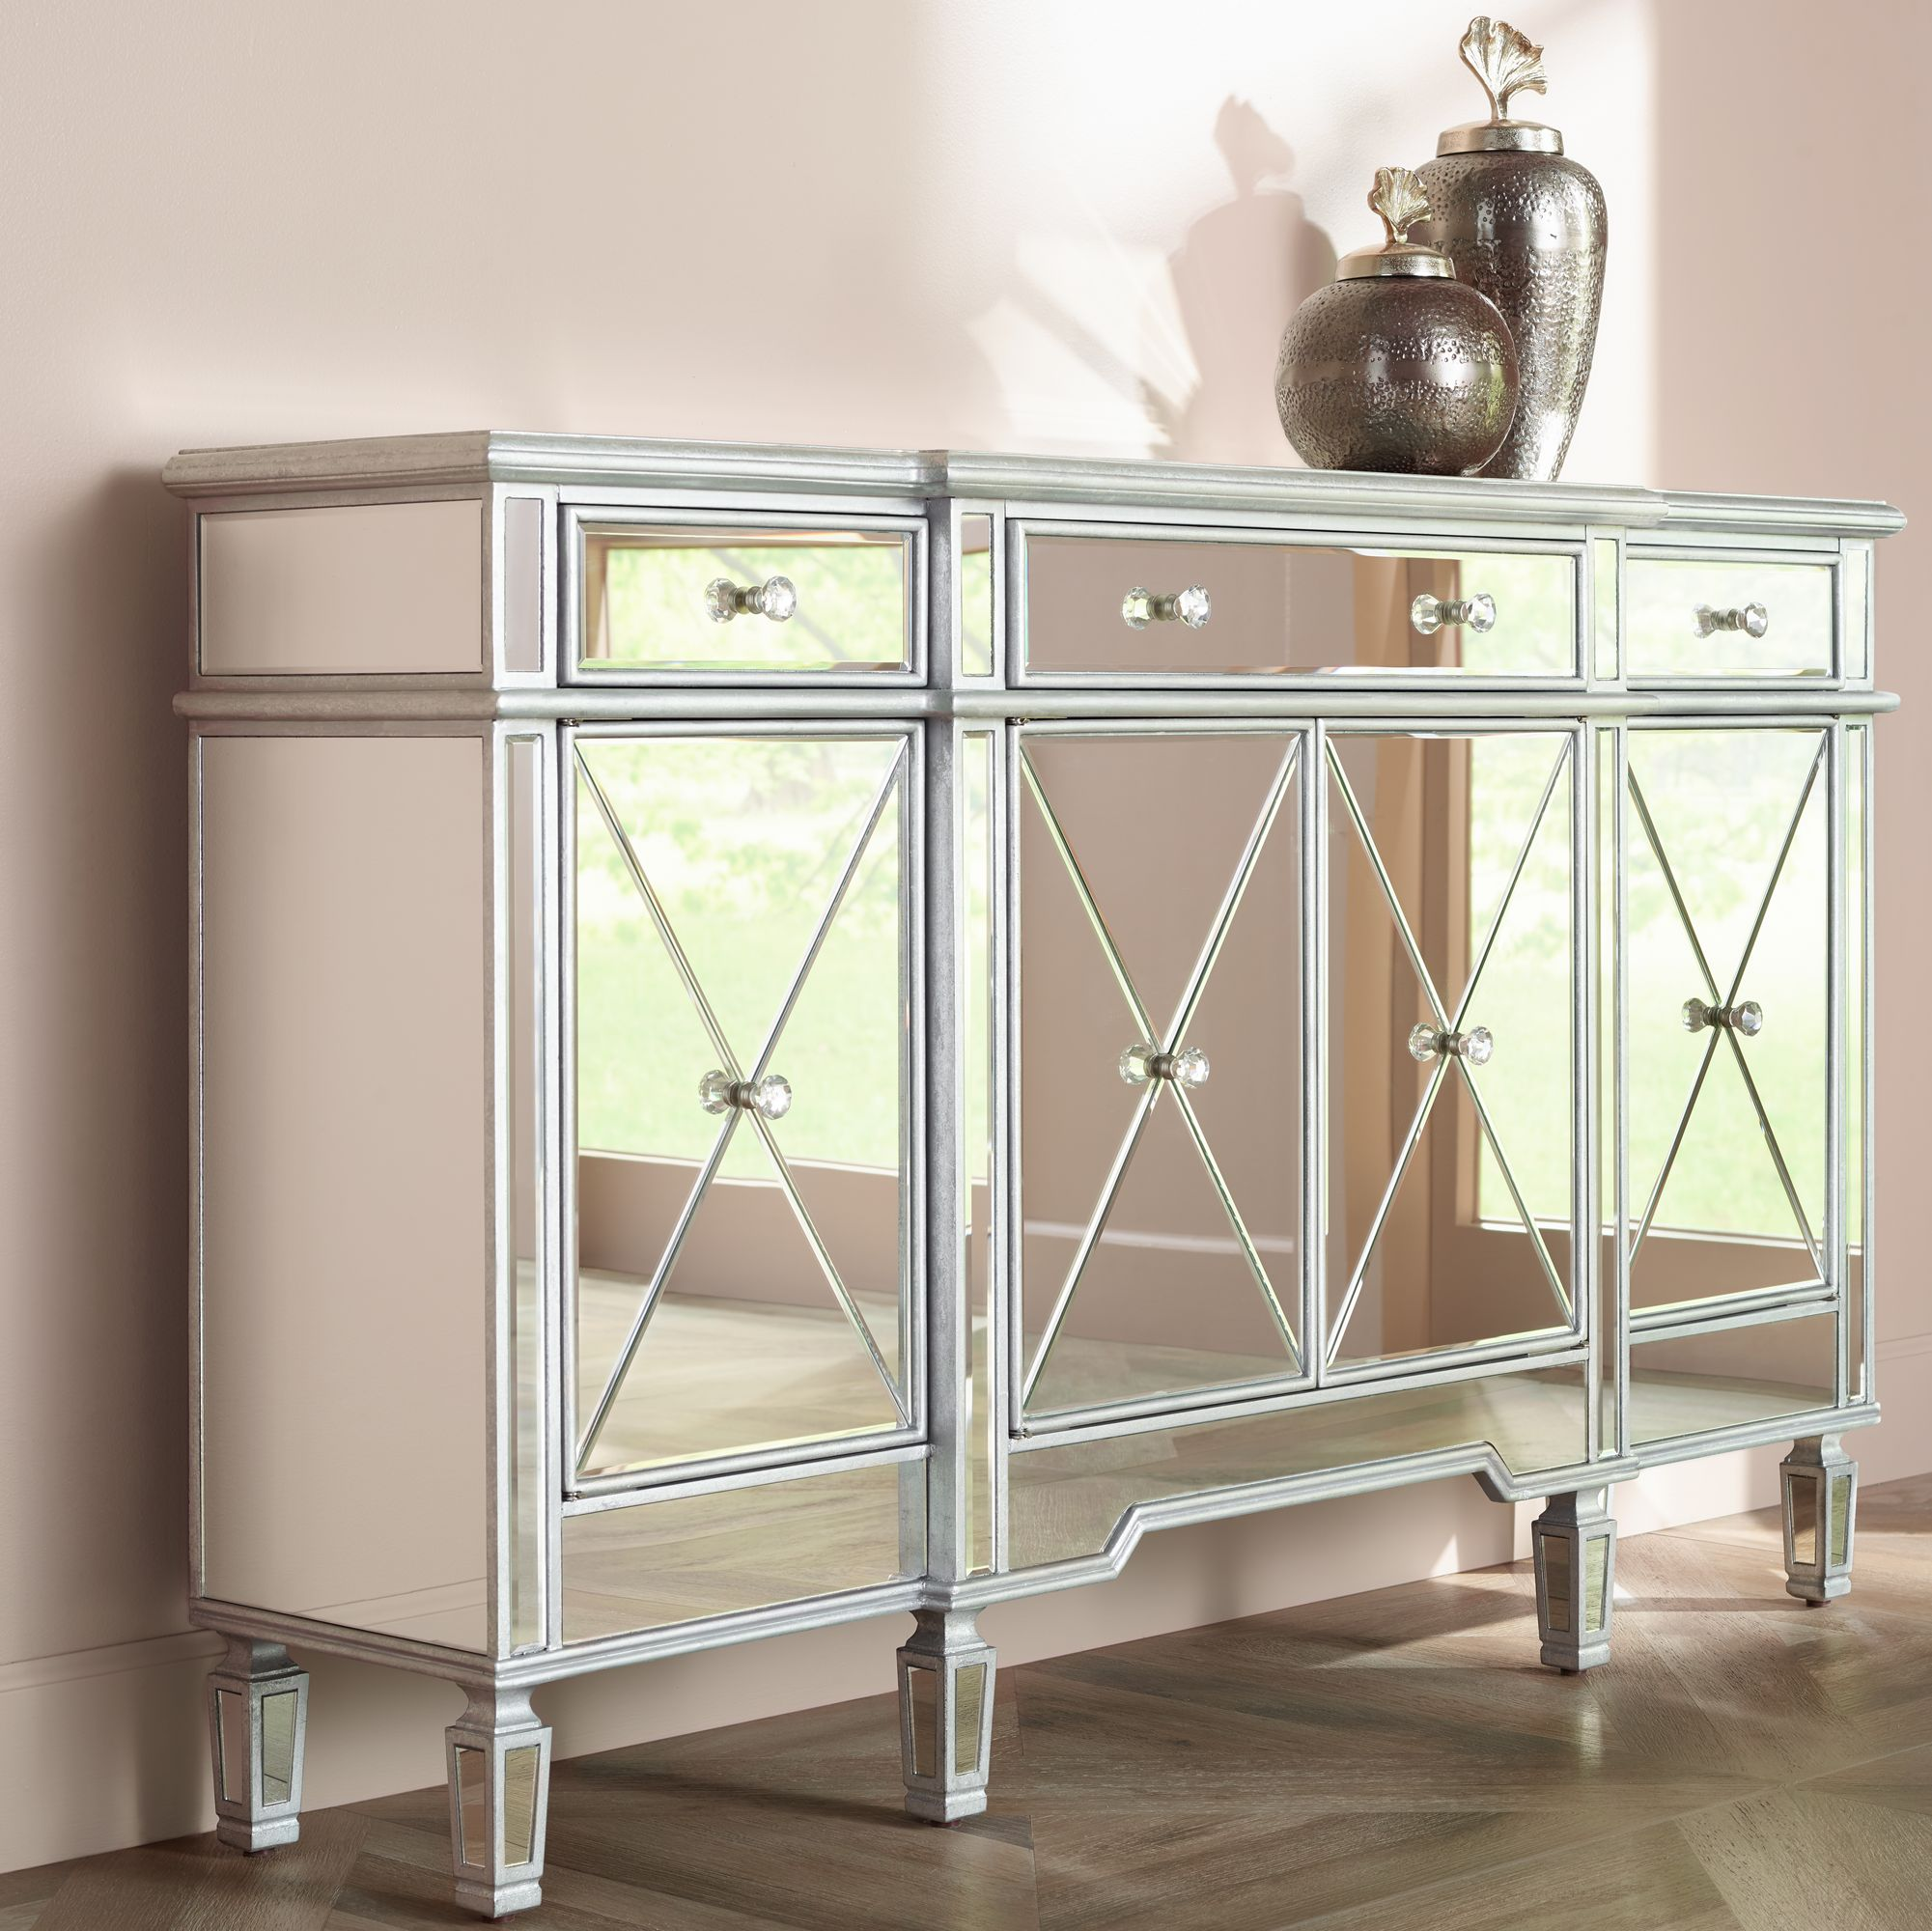 Exceptionnel Cablanca 4 Door 3 Drawer Silver Accent Cabinet